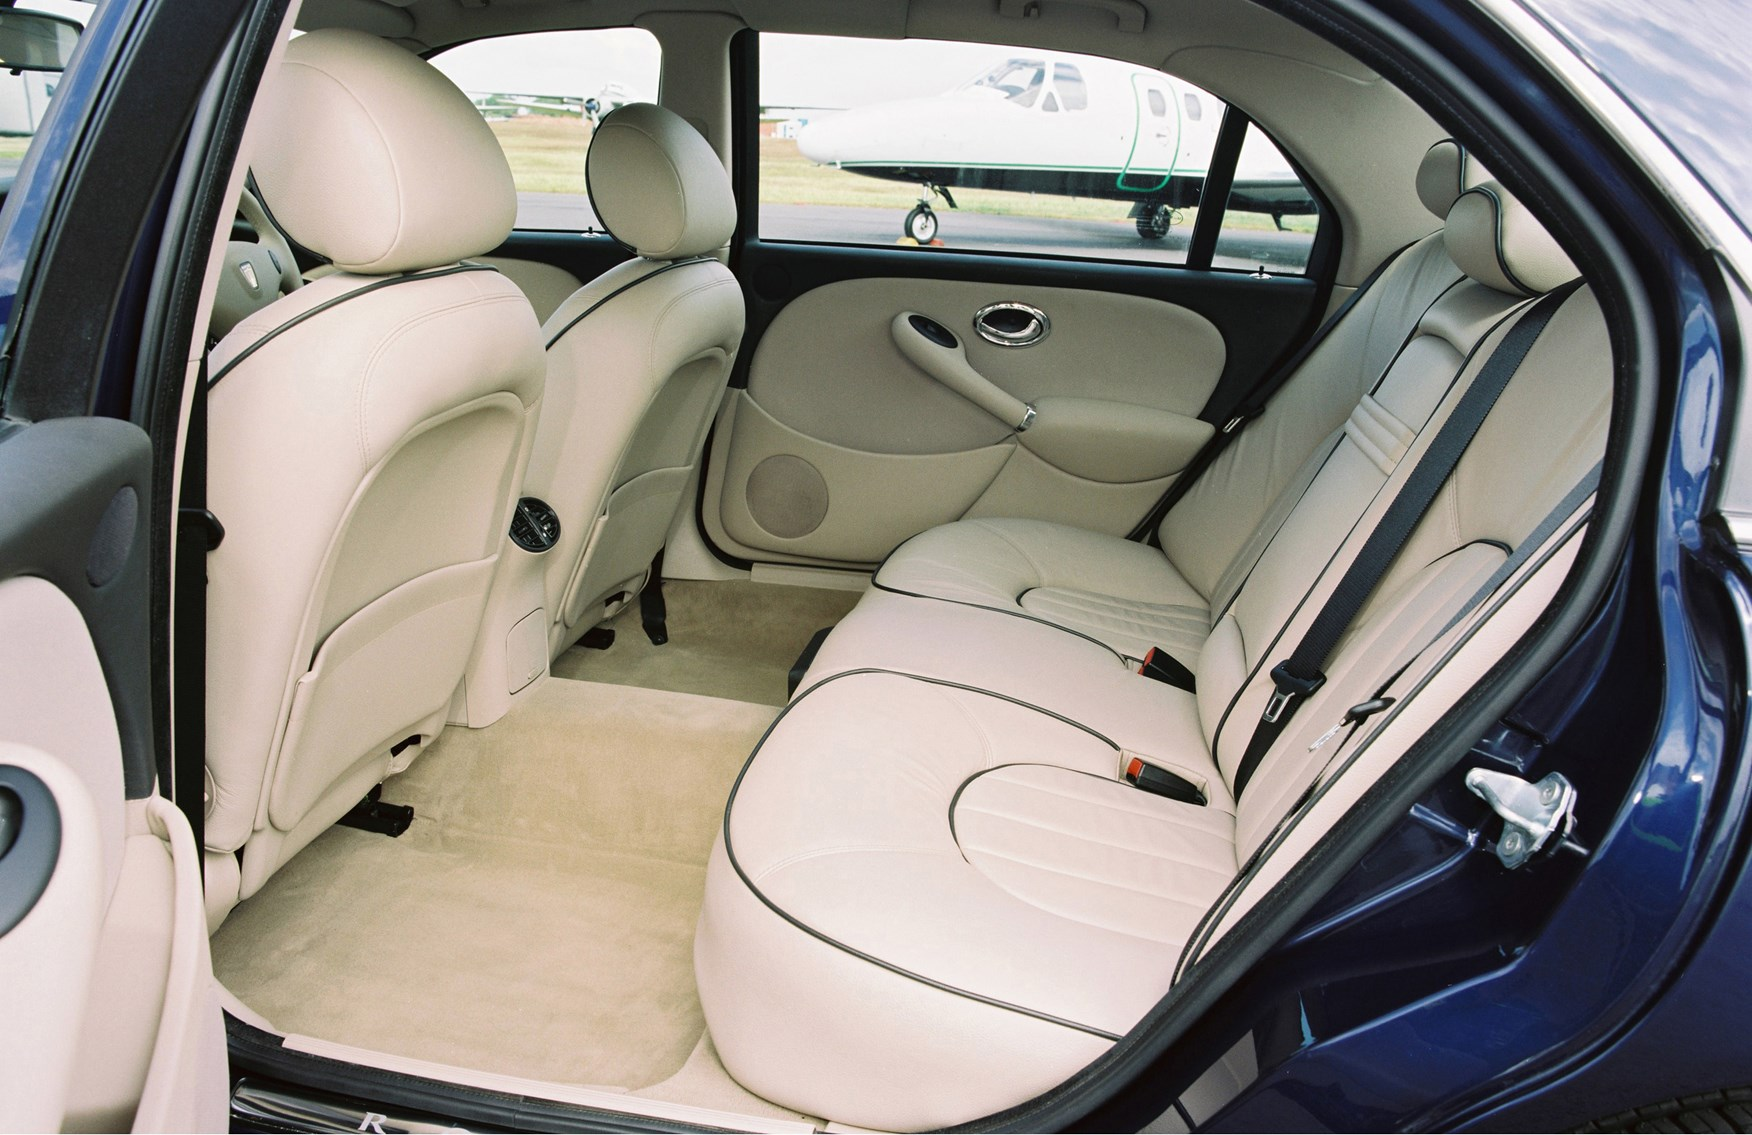 Rover 75 Saloon (1999 - 2004) Photos | Parkers